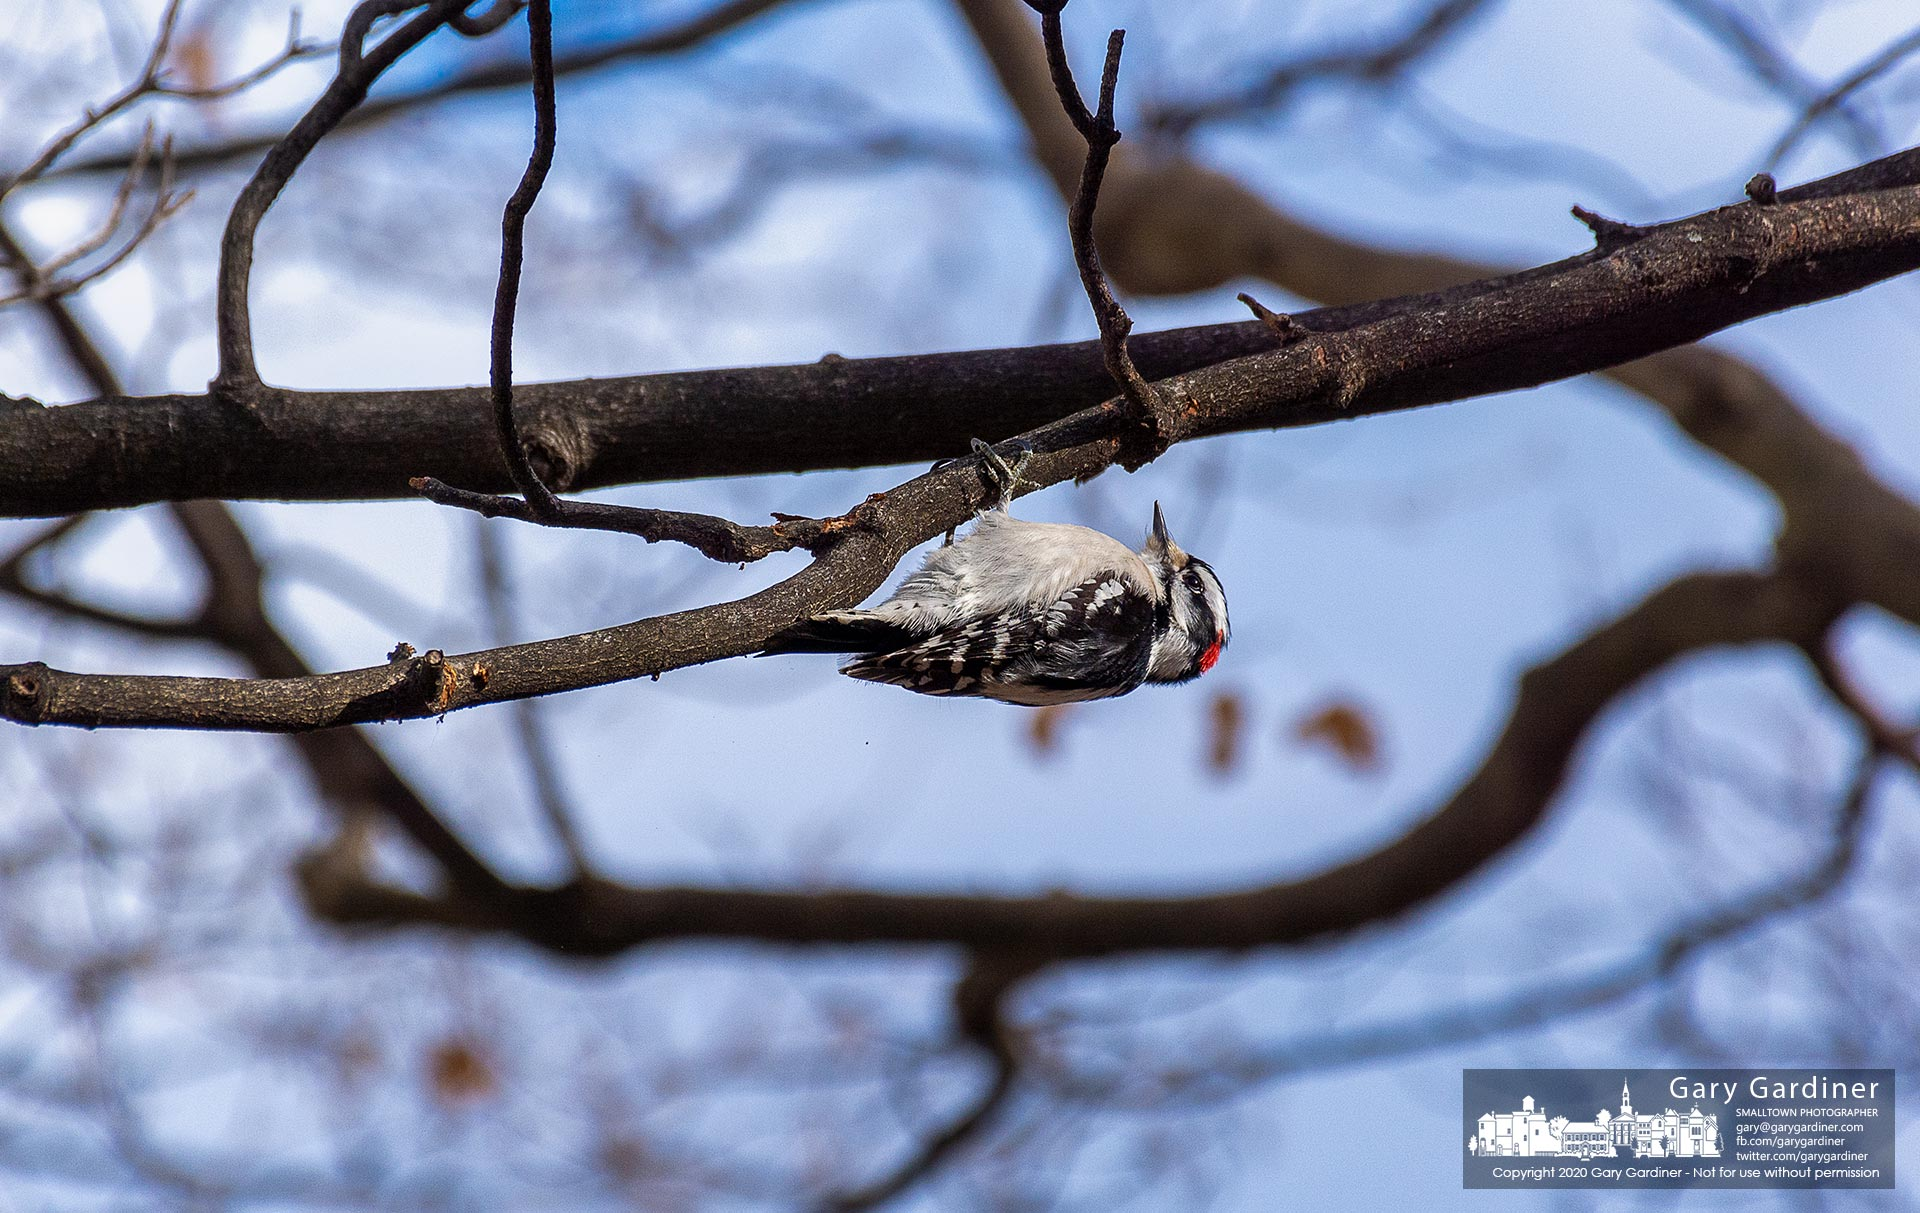 A Downy woodpecker hangs upside down as it forages for food on the maple tree at the old farmhouse on the Braun farm property on Cleveland Ave. My Final Photo for Jan. 20, 2020.